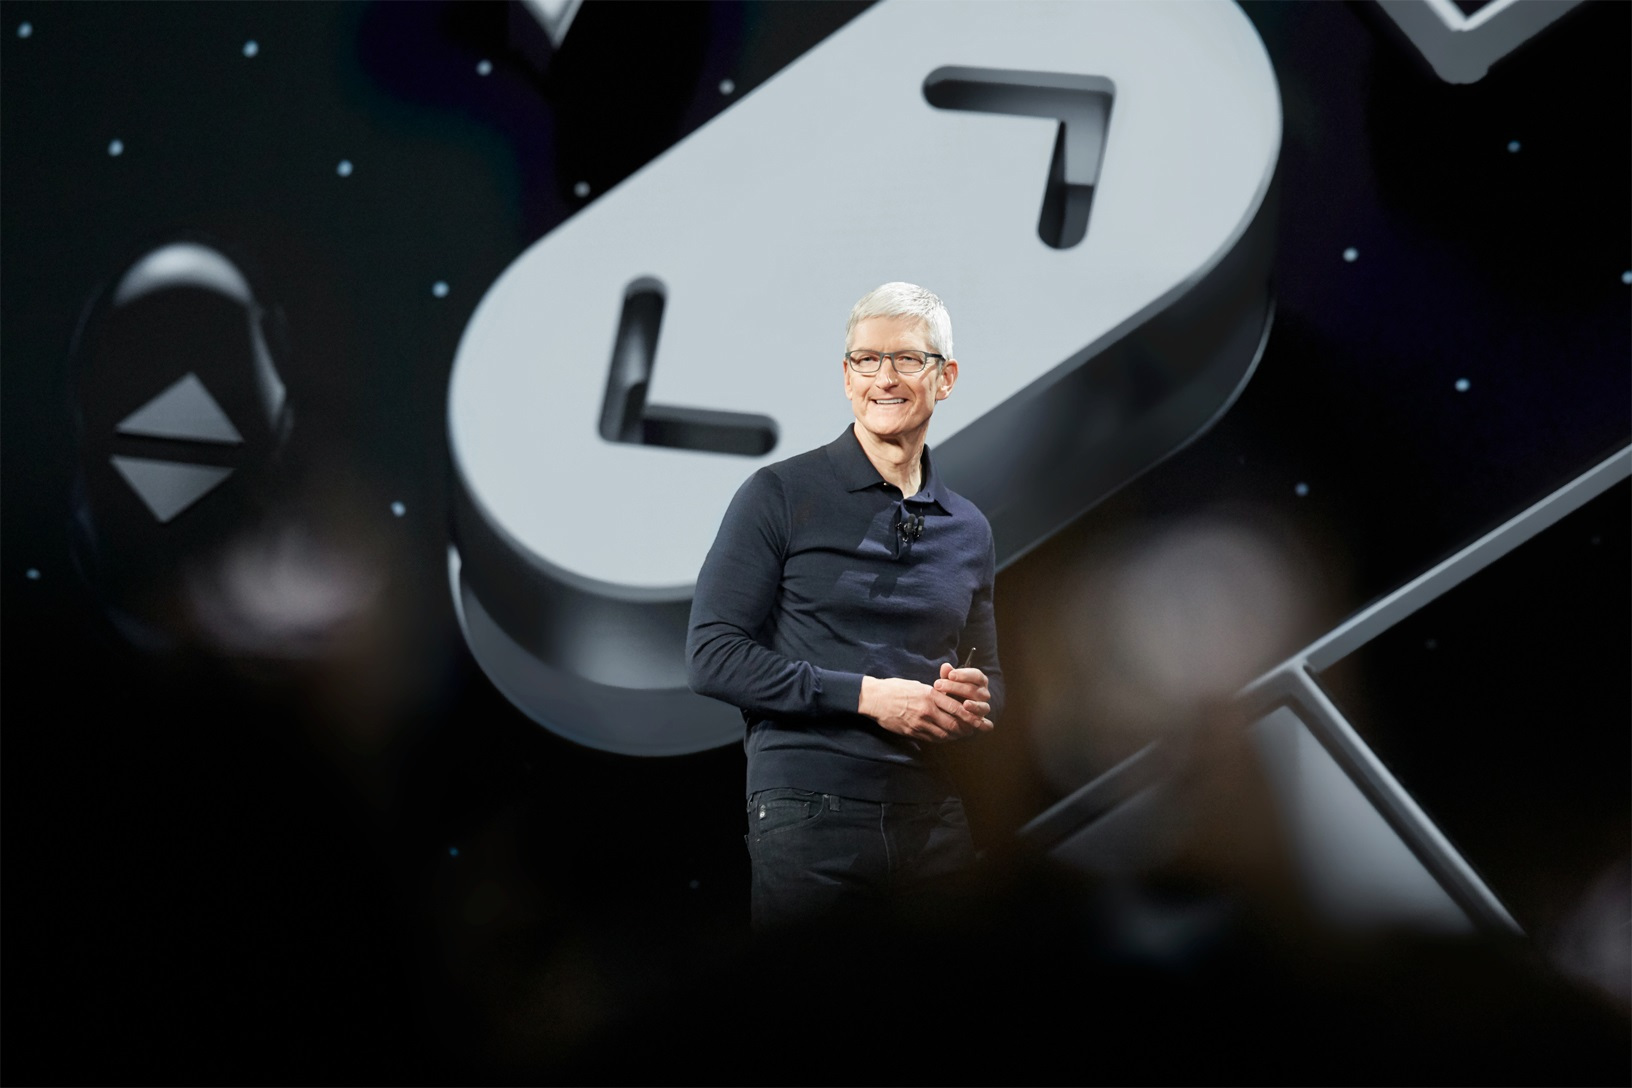 Tim Cook says Apple is working on products that 'will blow you away'